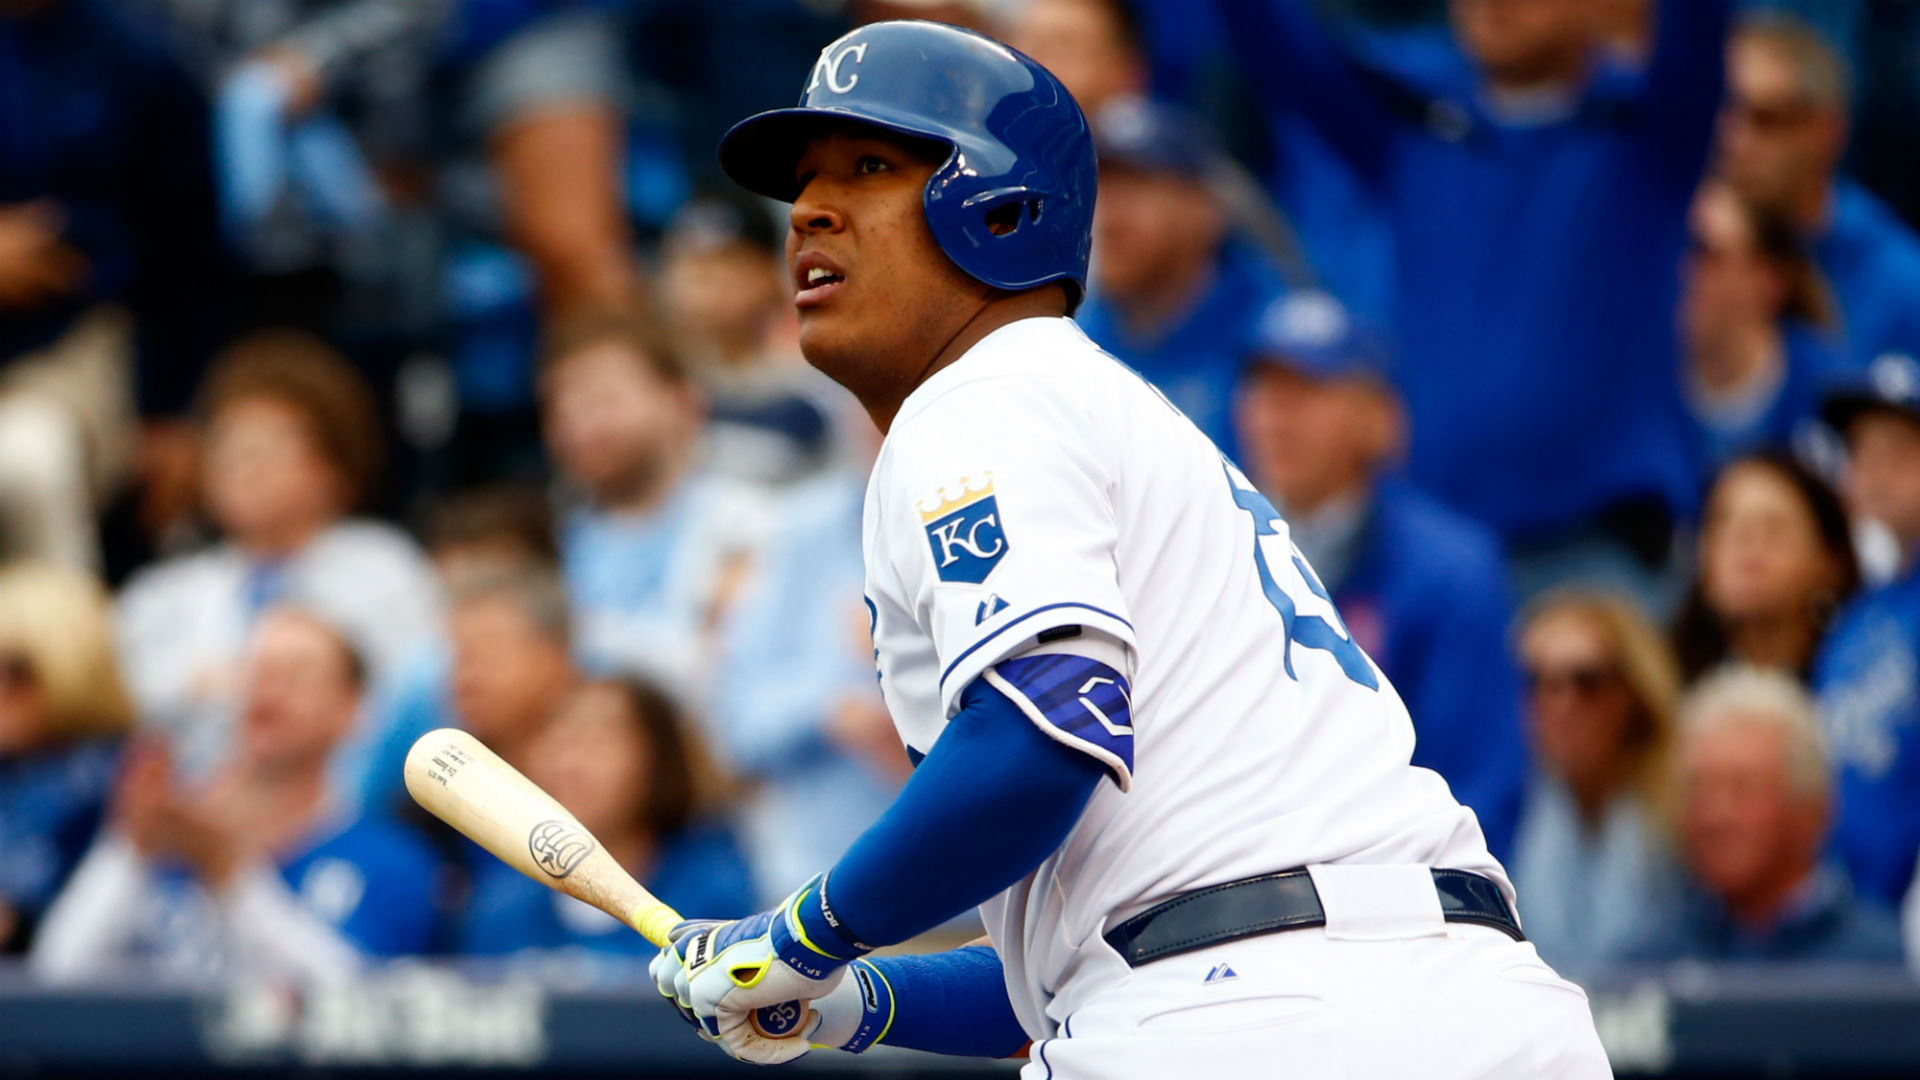 Royals All-Star Salvador Perez Tears MCL Carrying Luggage Up Stairs